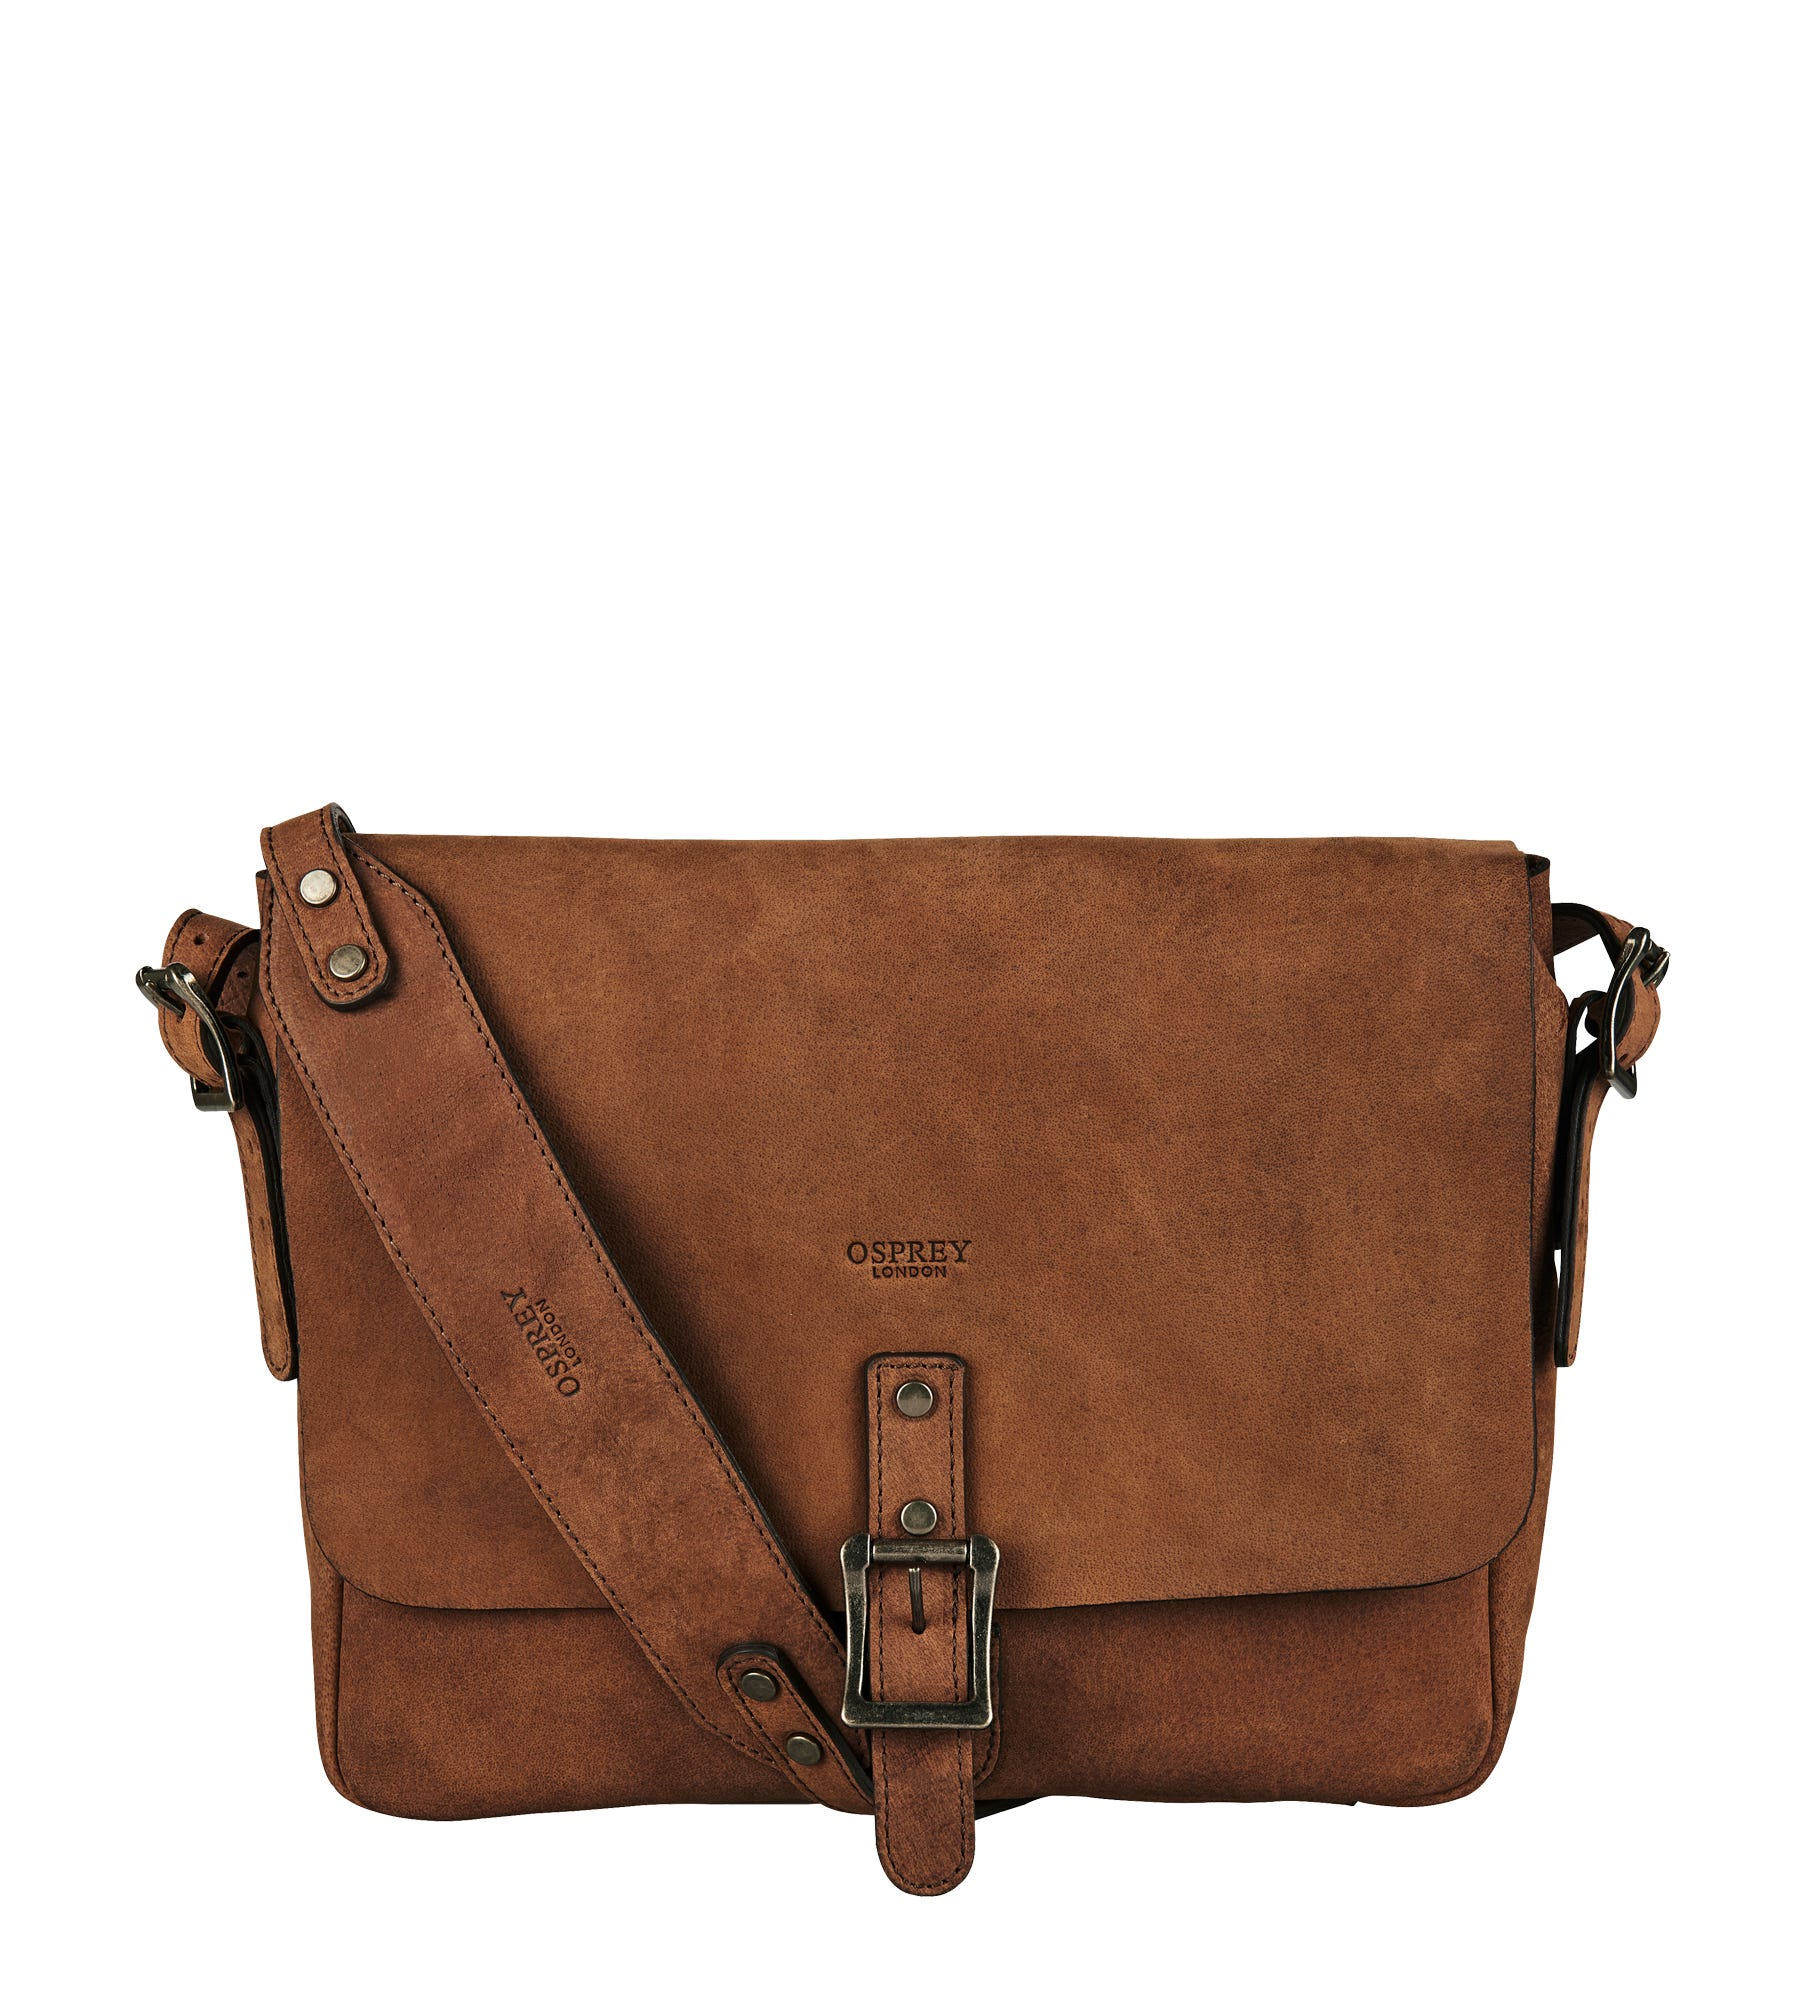 An image of The Clayton Leather Satchel